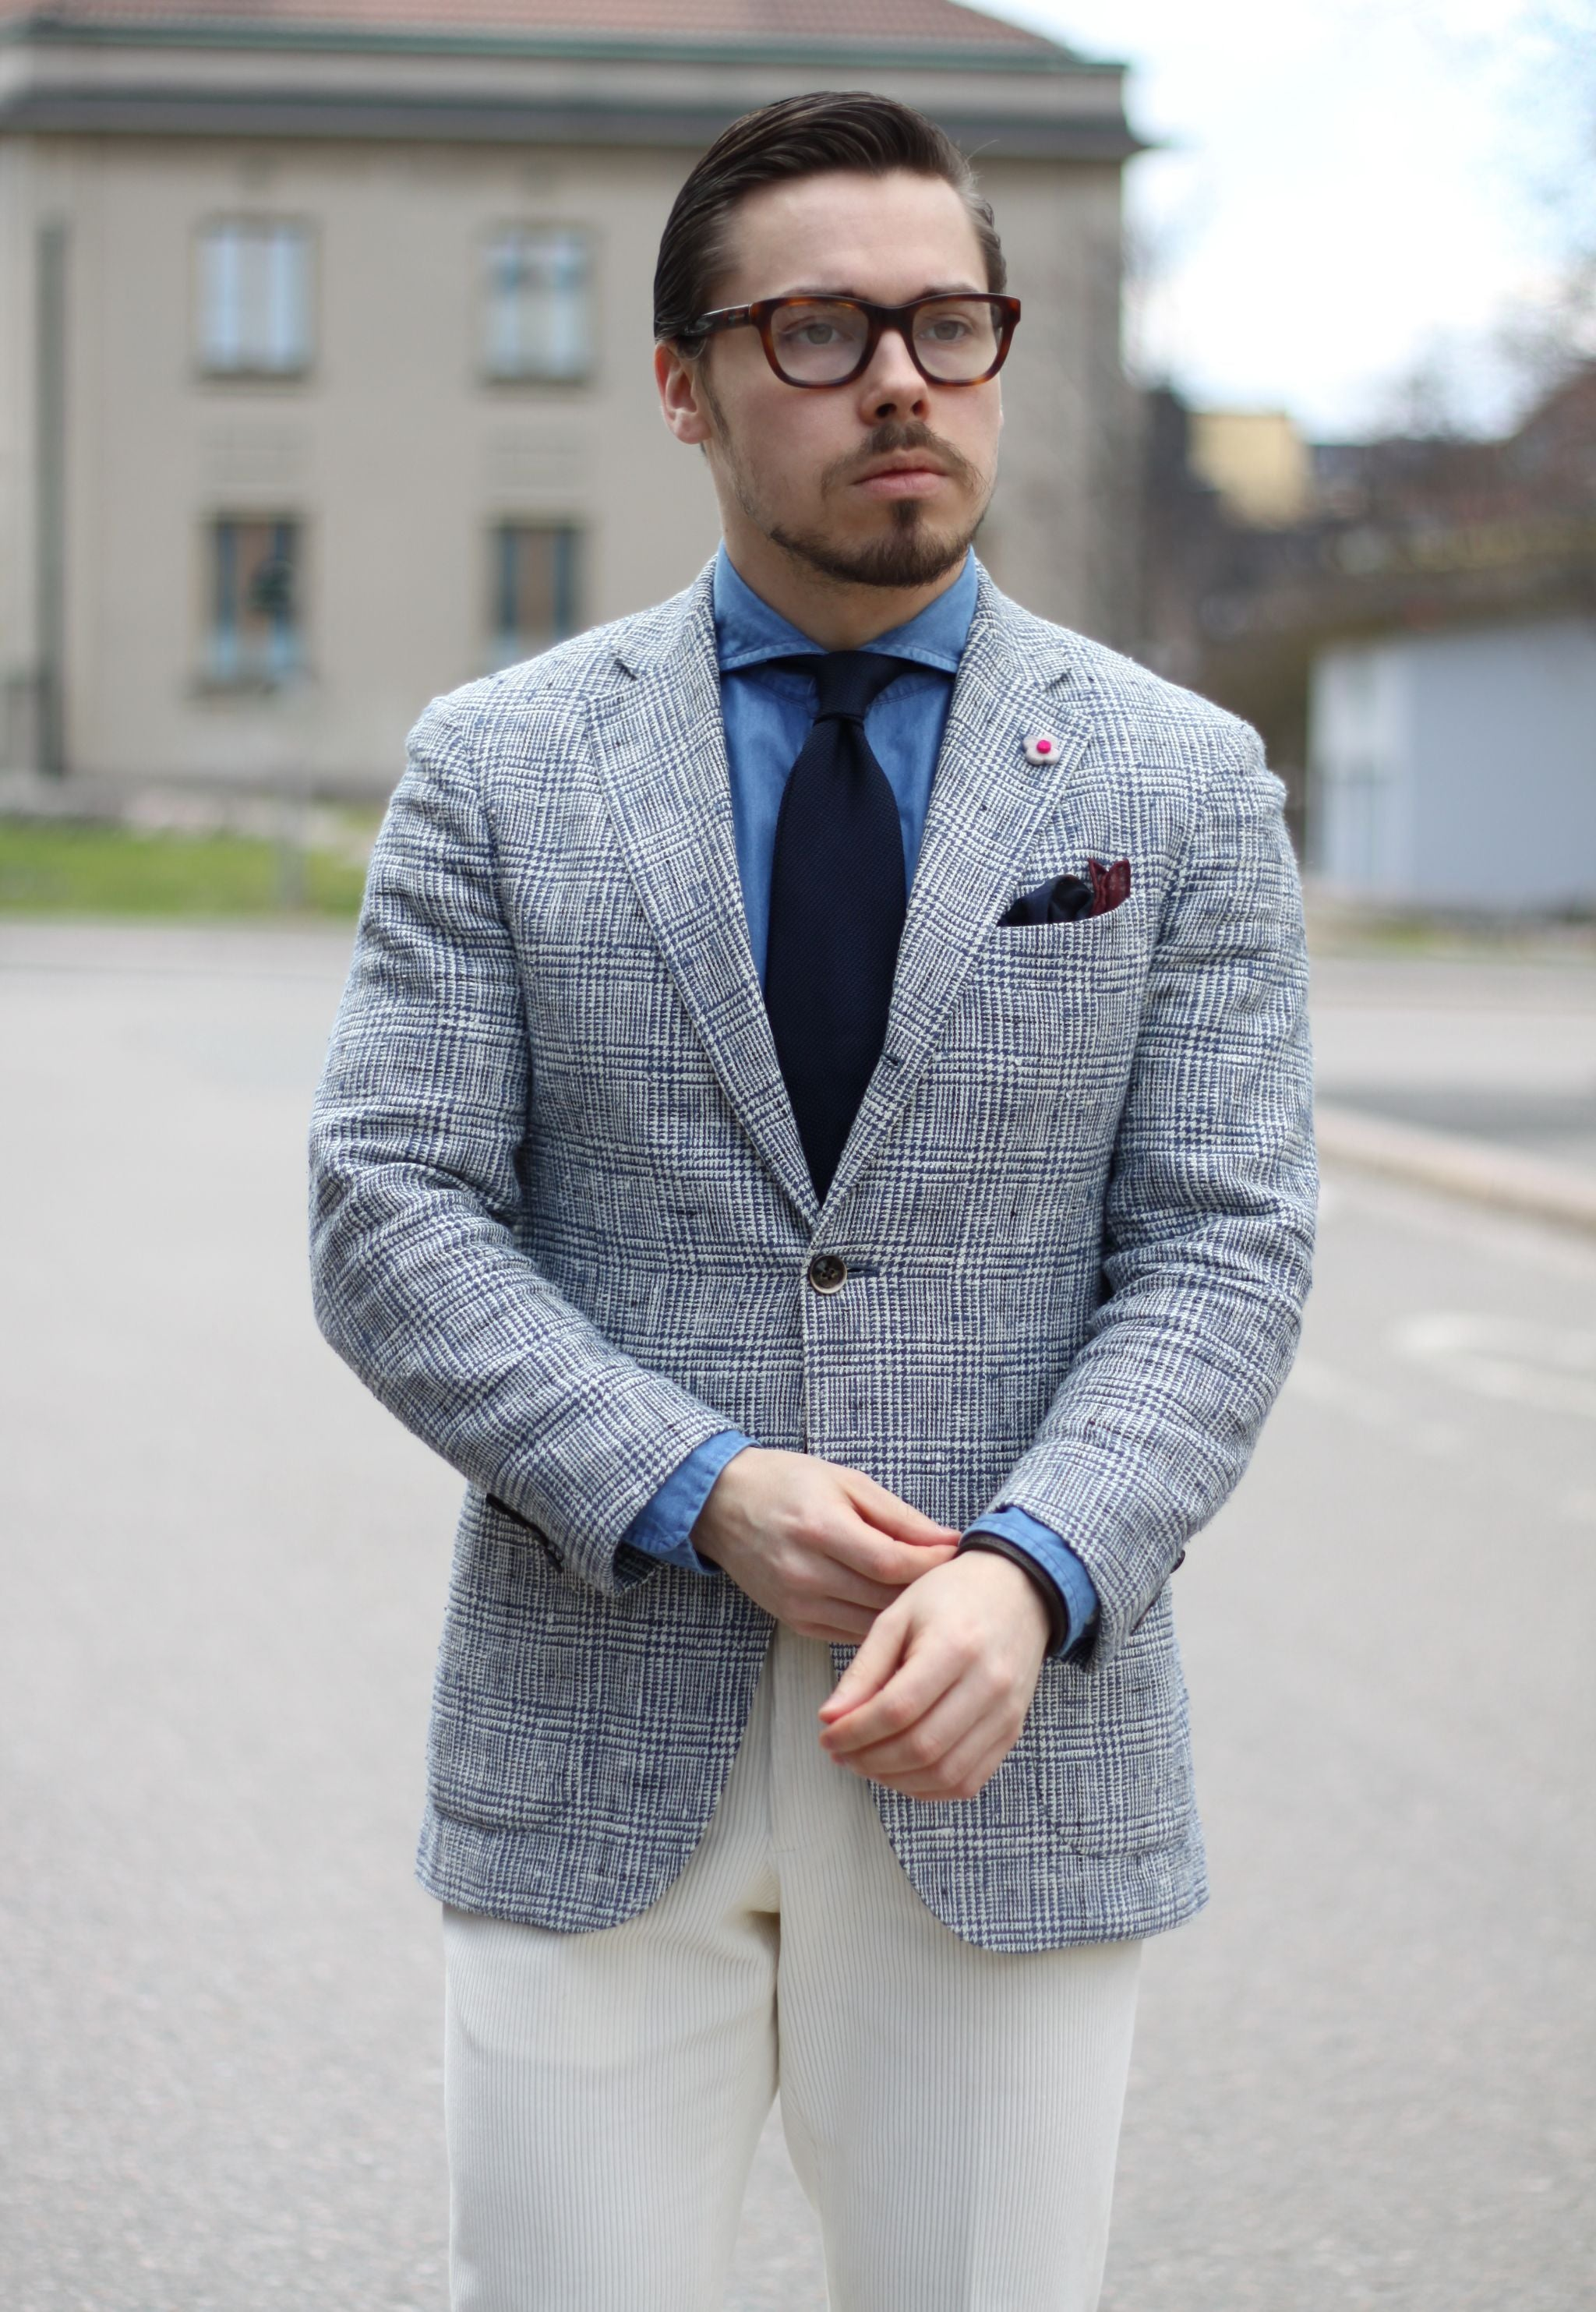 Checked Lardini sport coat with denim shirt and blue tie